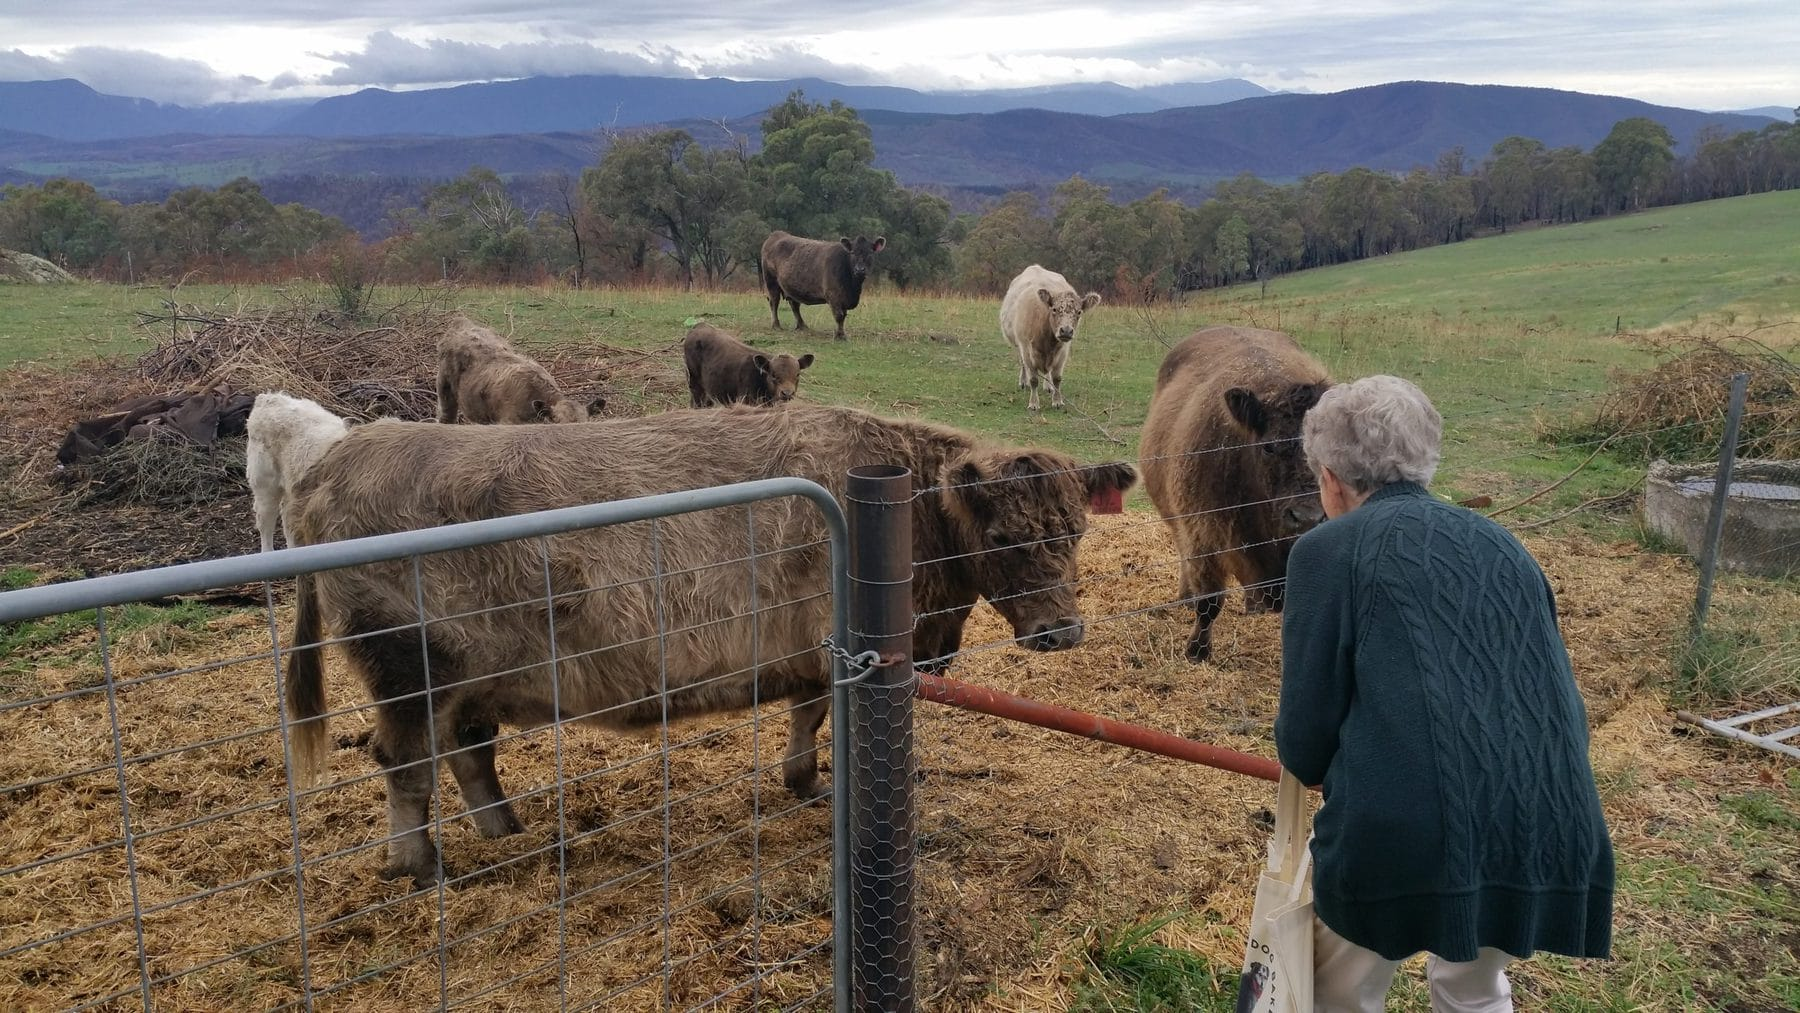 several cows behind a fence and woman in front